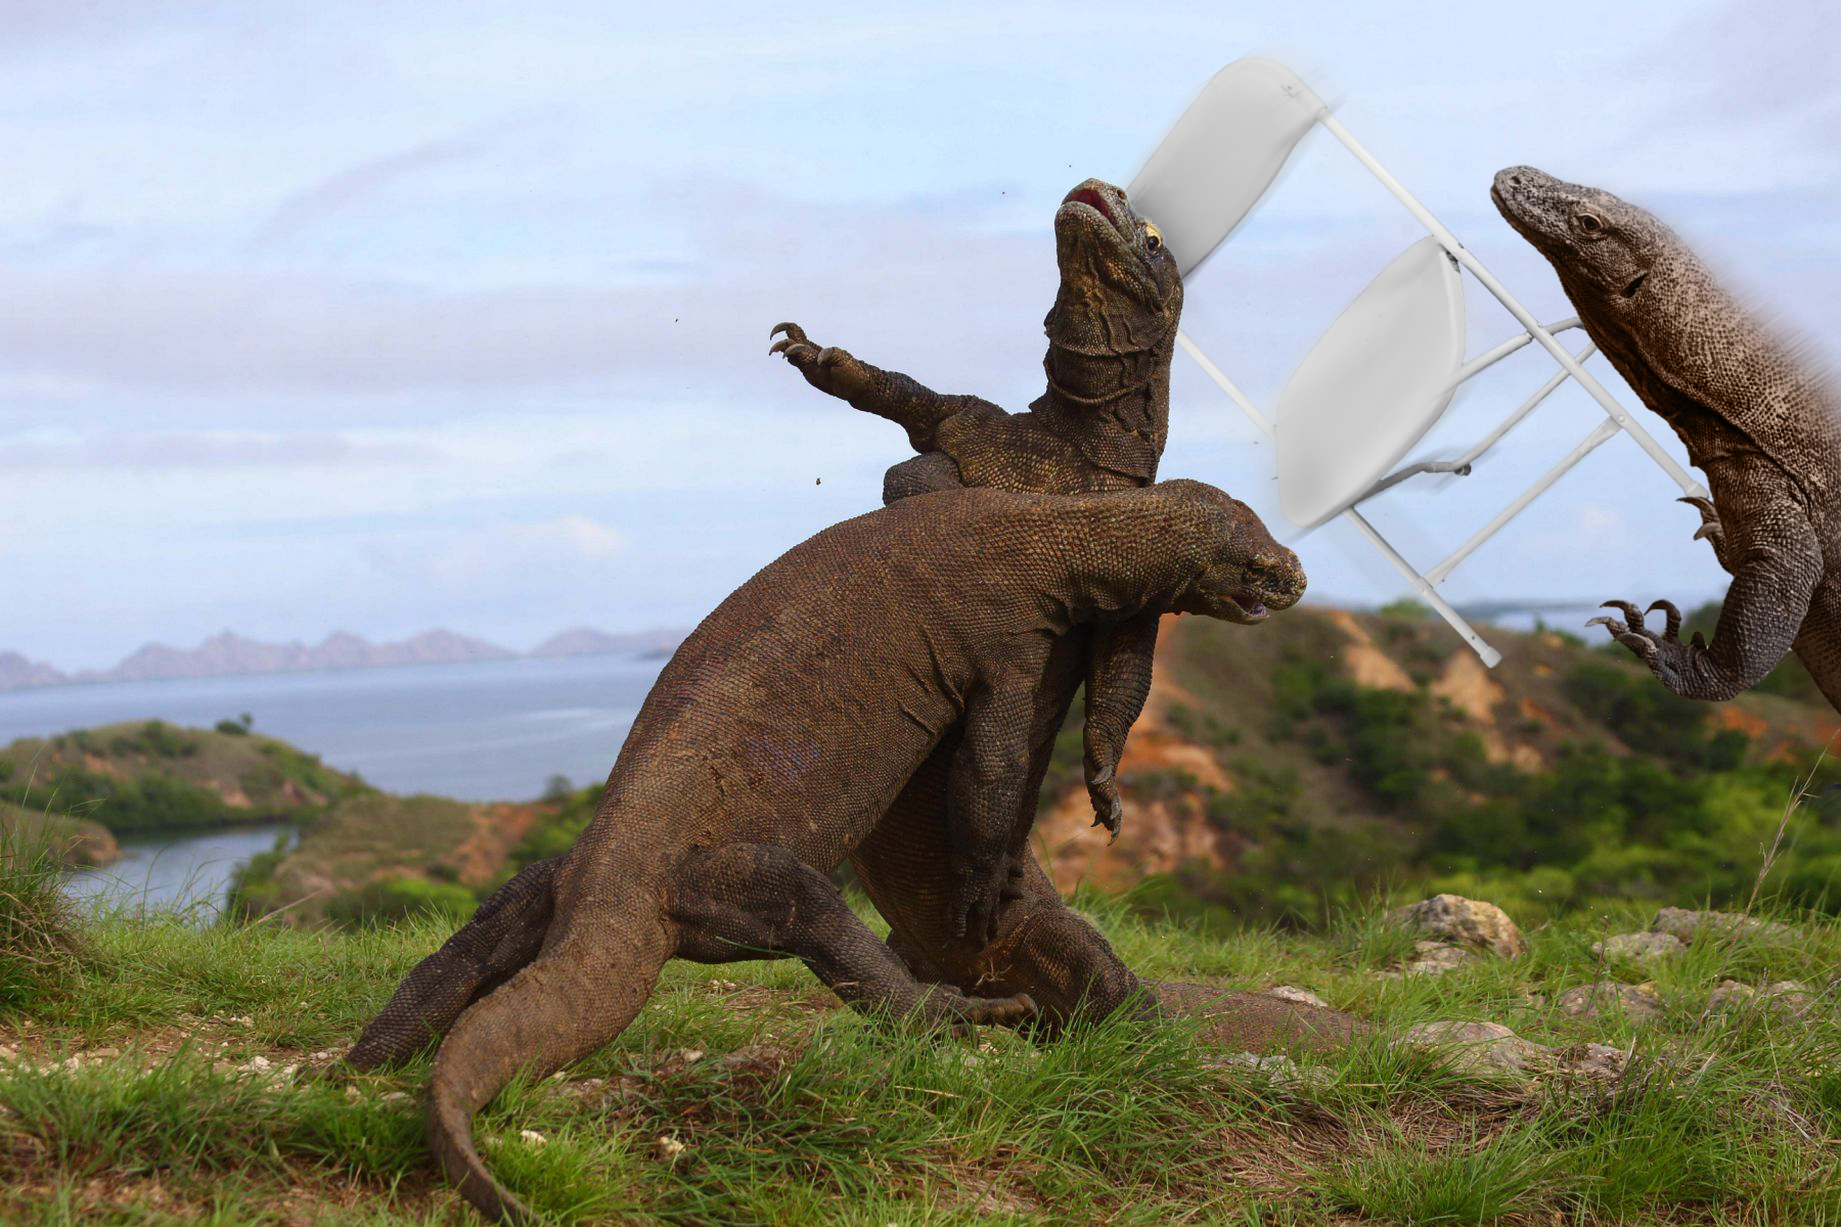 photo of 2 komodo dragons fighting gives way to hilarious